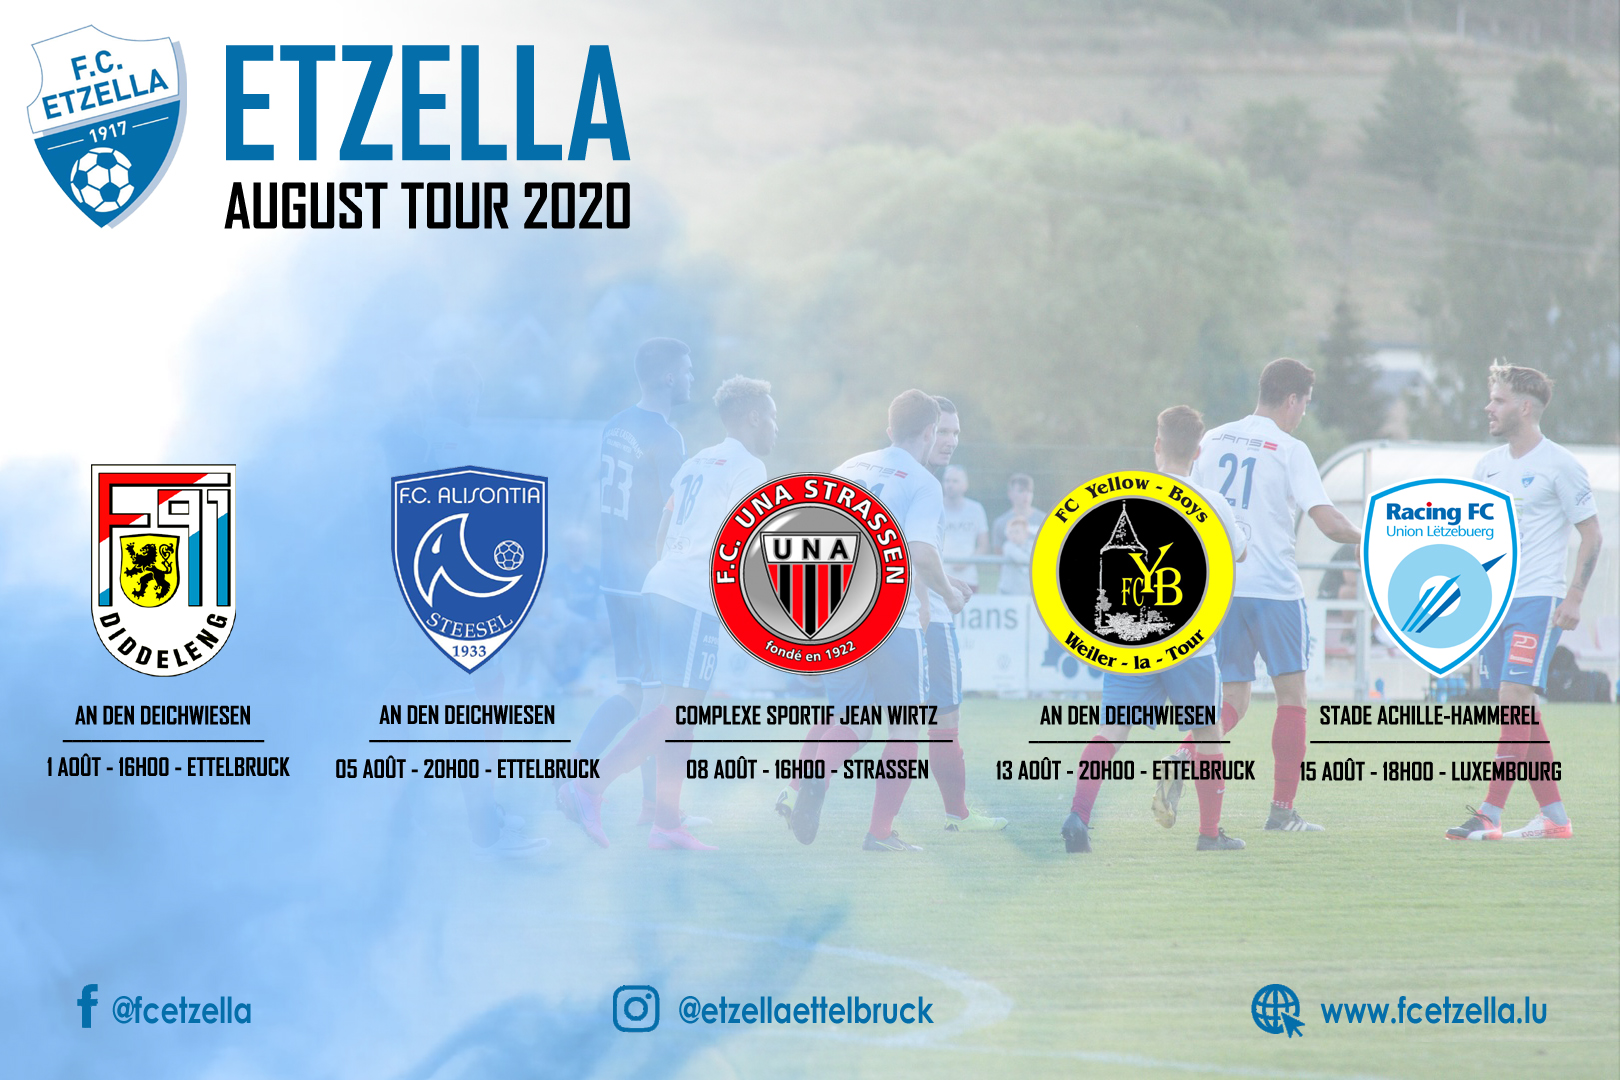 ETZELLA AUGUST TOUR 2020